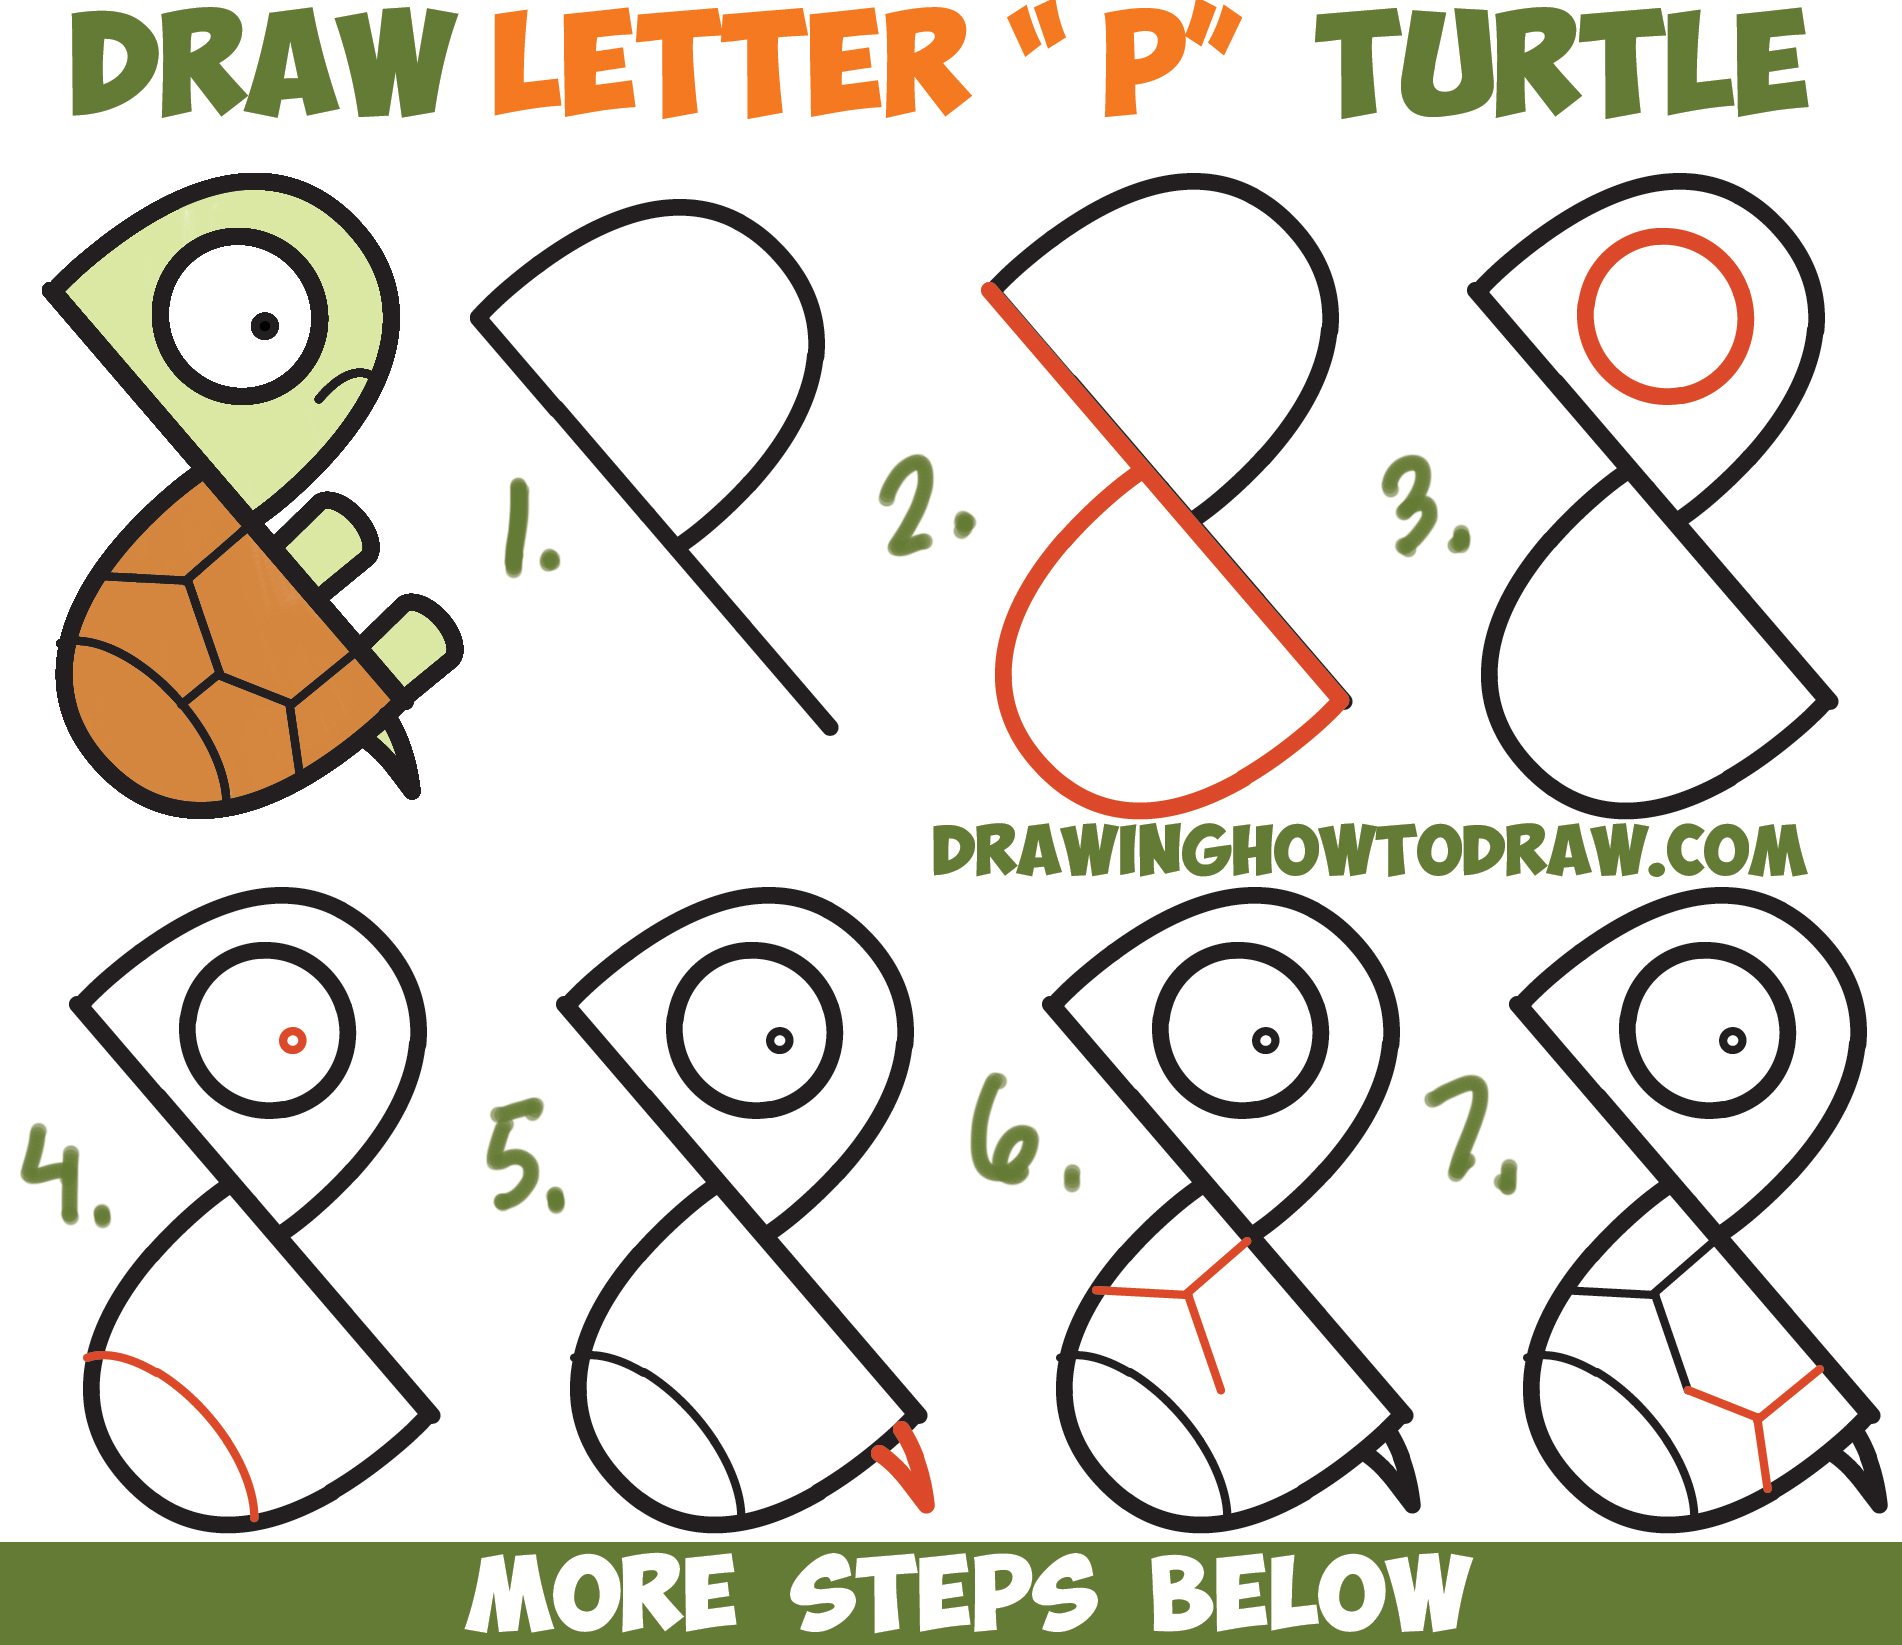 Uncategorized How To Draw A Turtle For Kids how to draw a cute cartoon turtle from letter p shapes easy step by